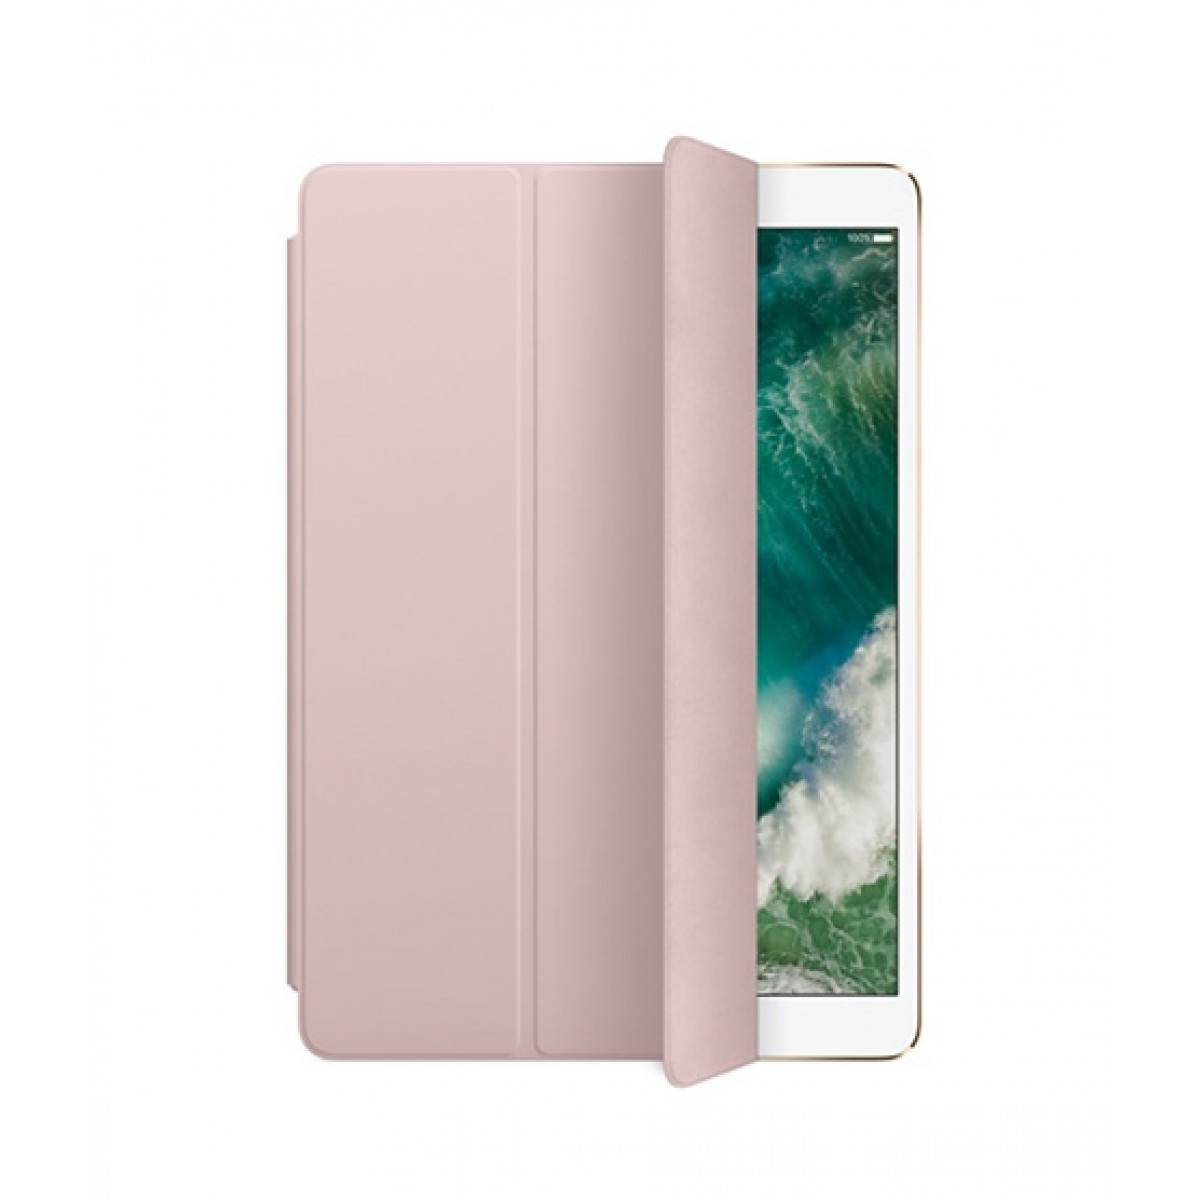 Smart Cover Reviews >> Reviews For Apple Smart Cover For Ipad Pro 10 5 Price In Pakistan